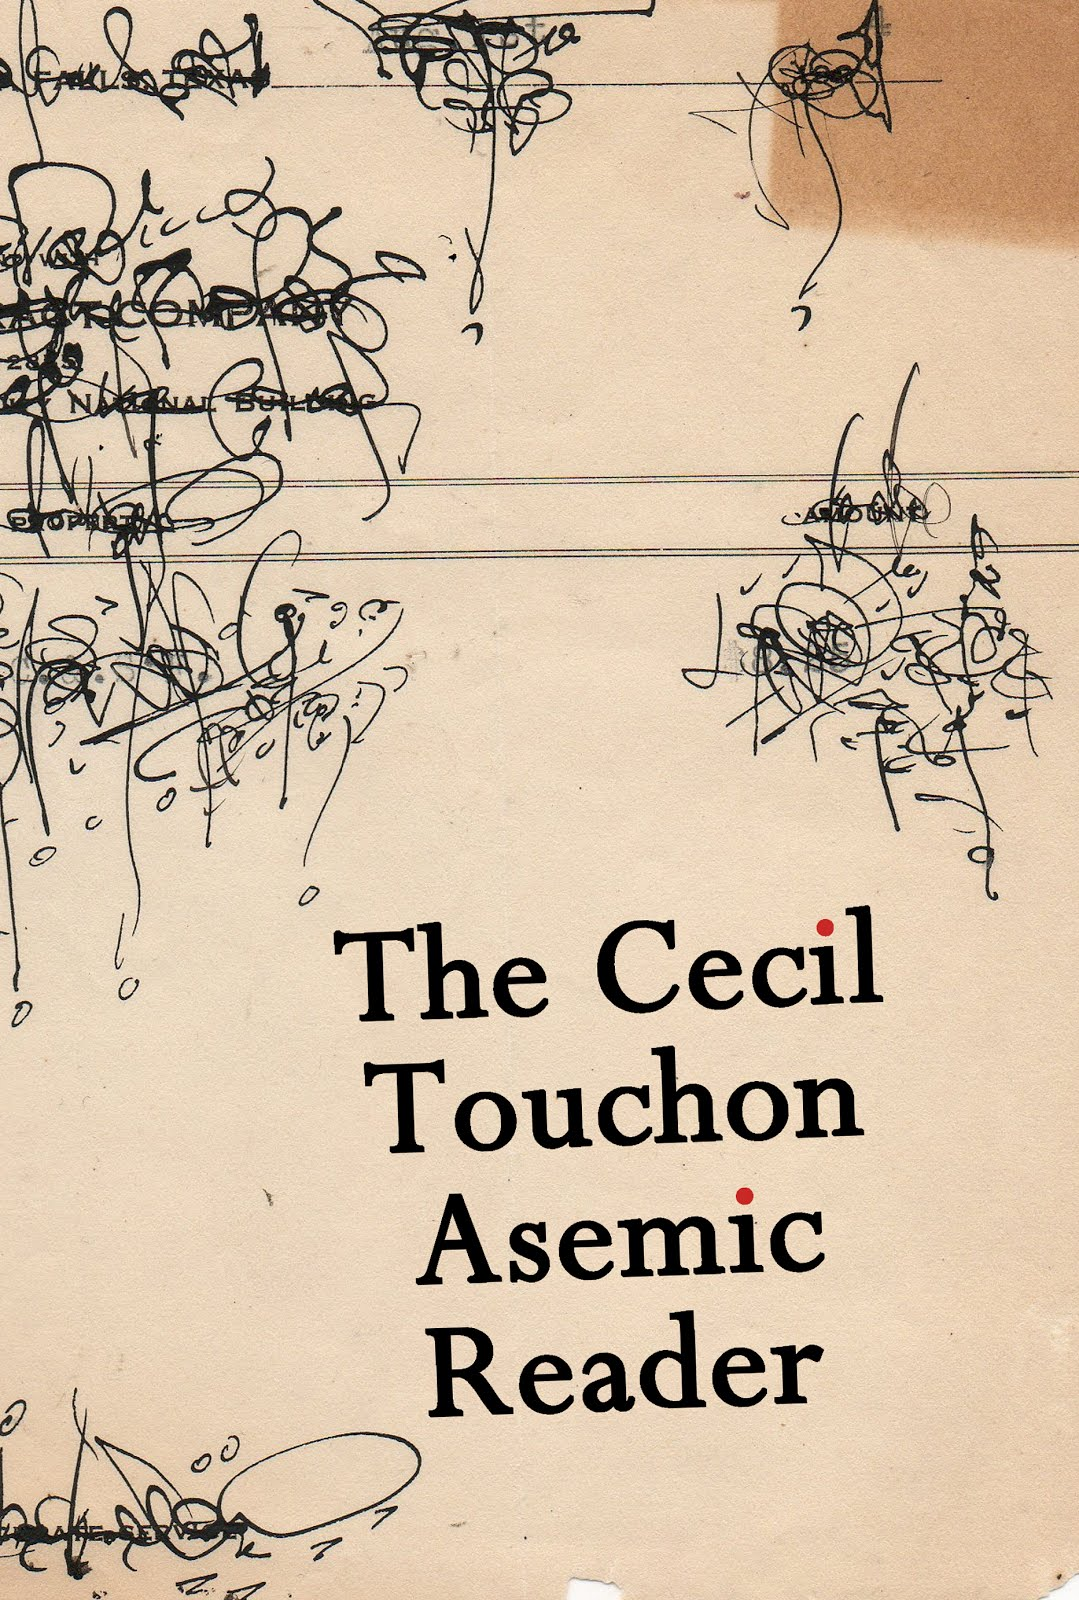 Available Now @ Amazon! The Cecil Touchon Asemic Reader